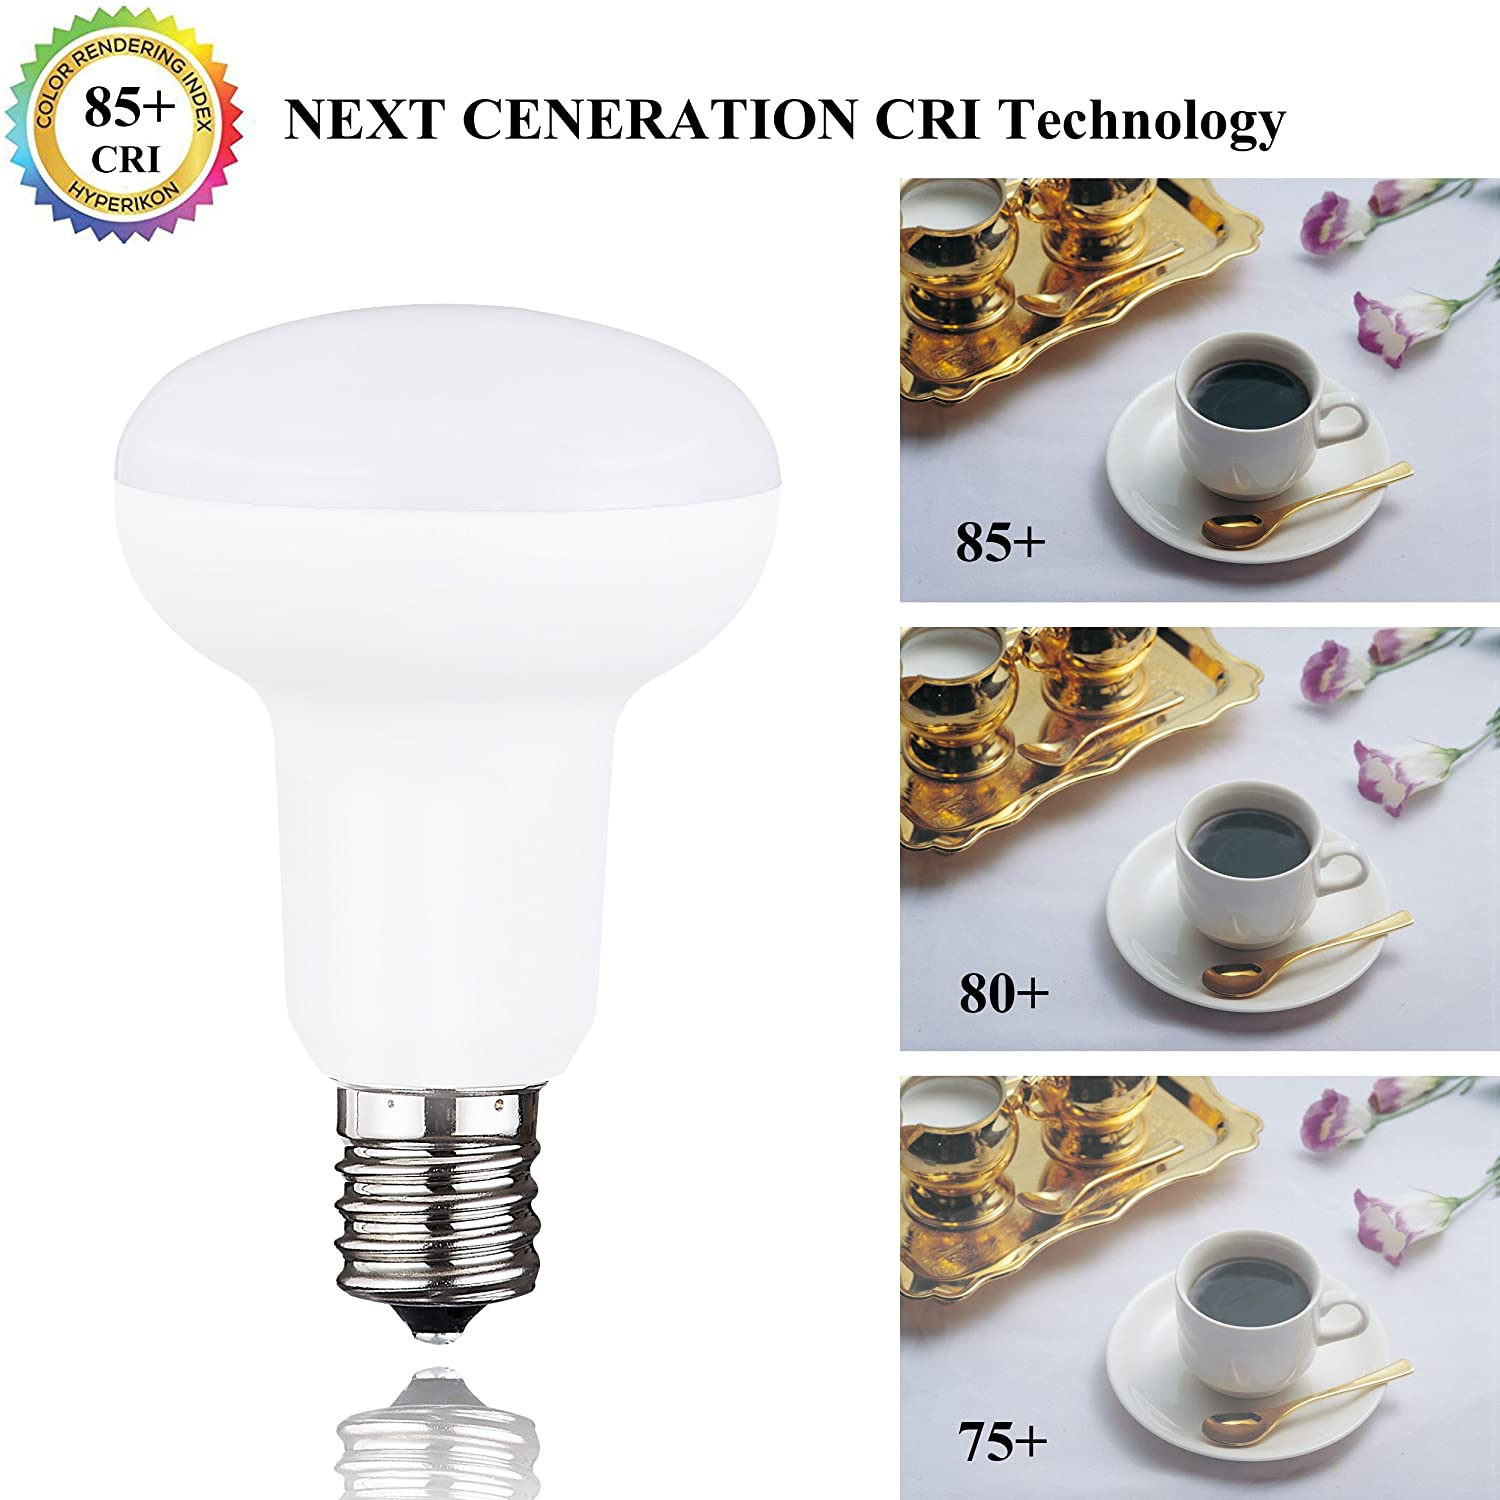 R16//BR16//R14 Mini Reflector Light Bulb 5W Equivalent 50 Watt Halogen Bulbs Internediate E17 Base LED Flood Light Bulb Dimmable 5000K Daylight White 500Lumens 120Volt 10 Pack